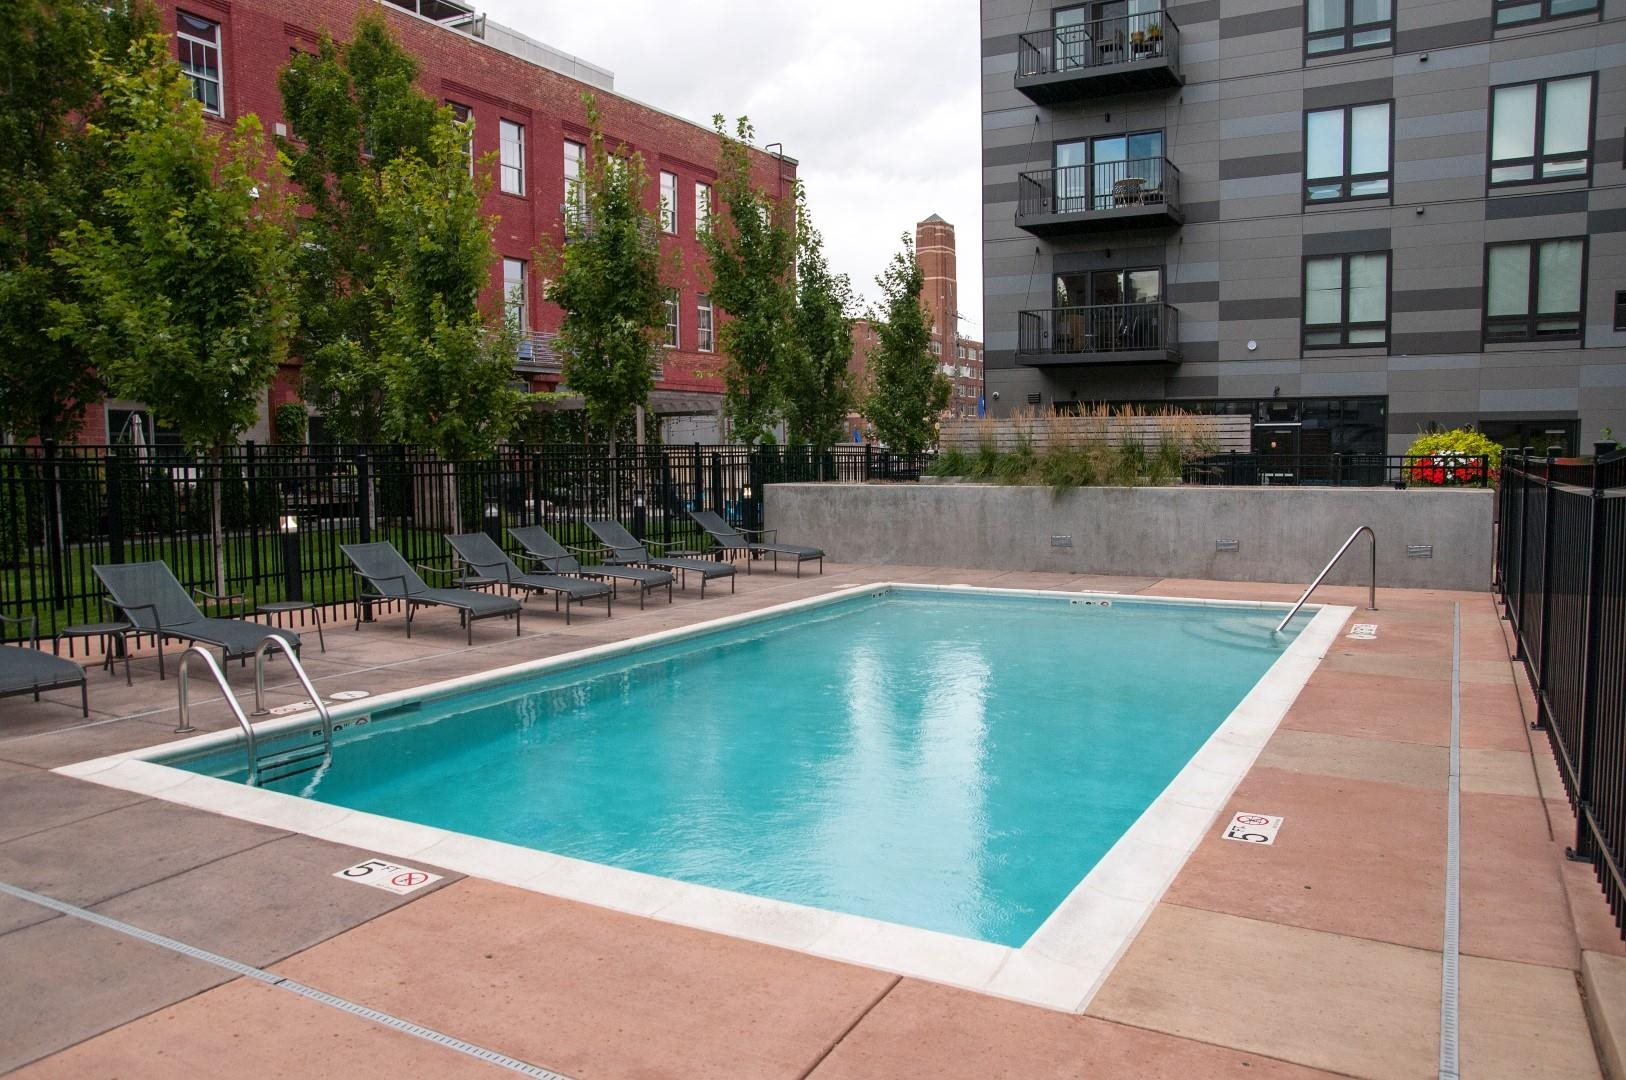 Swimming Pool with Lounge Chairs at Third North, Minneapolis, 55401